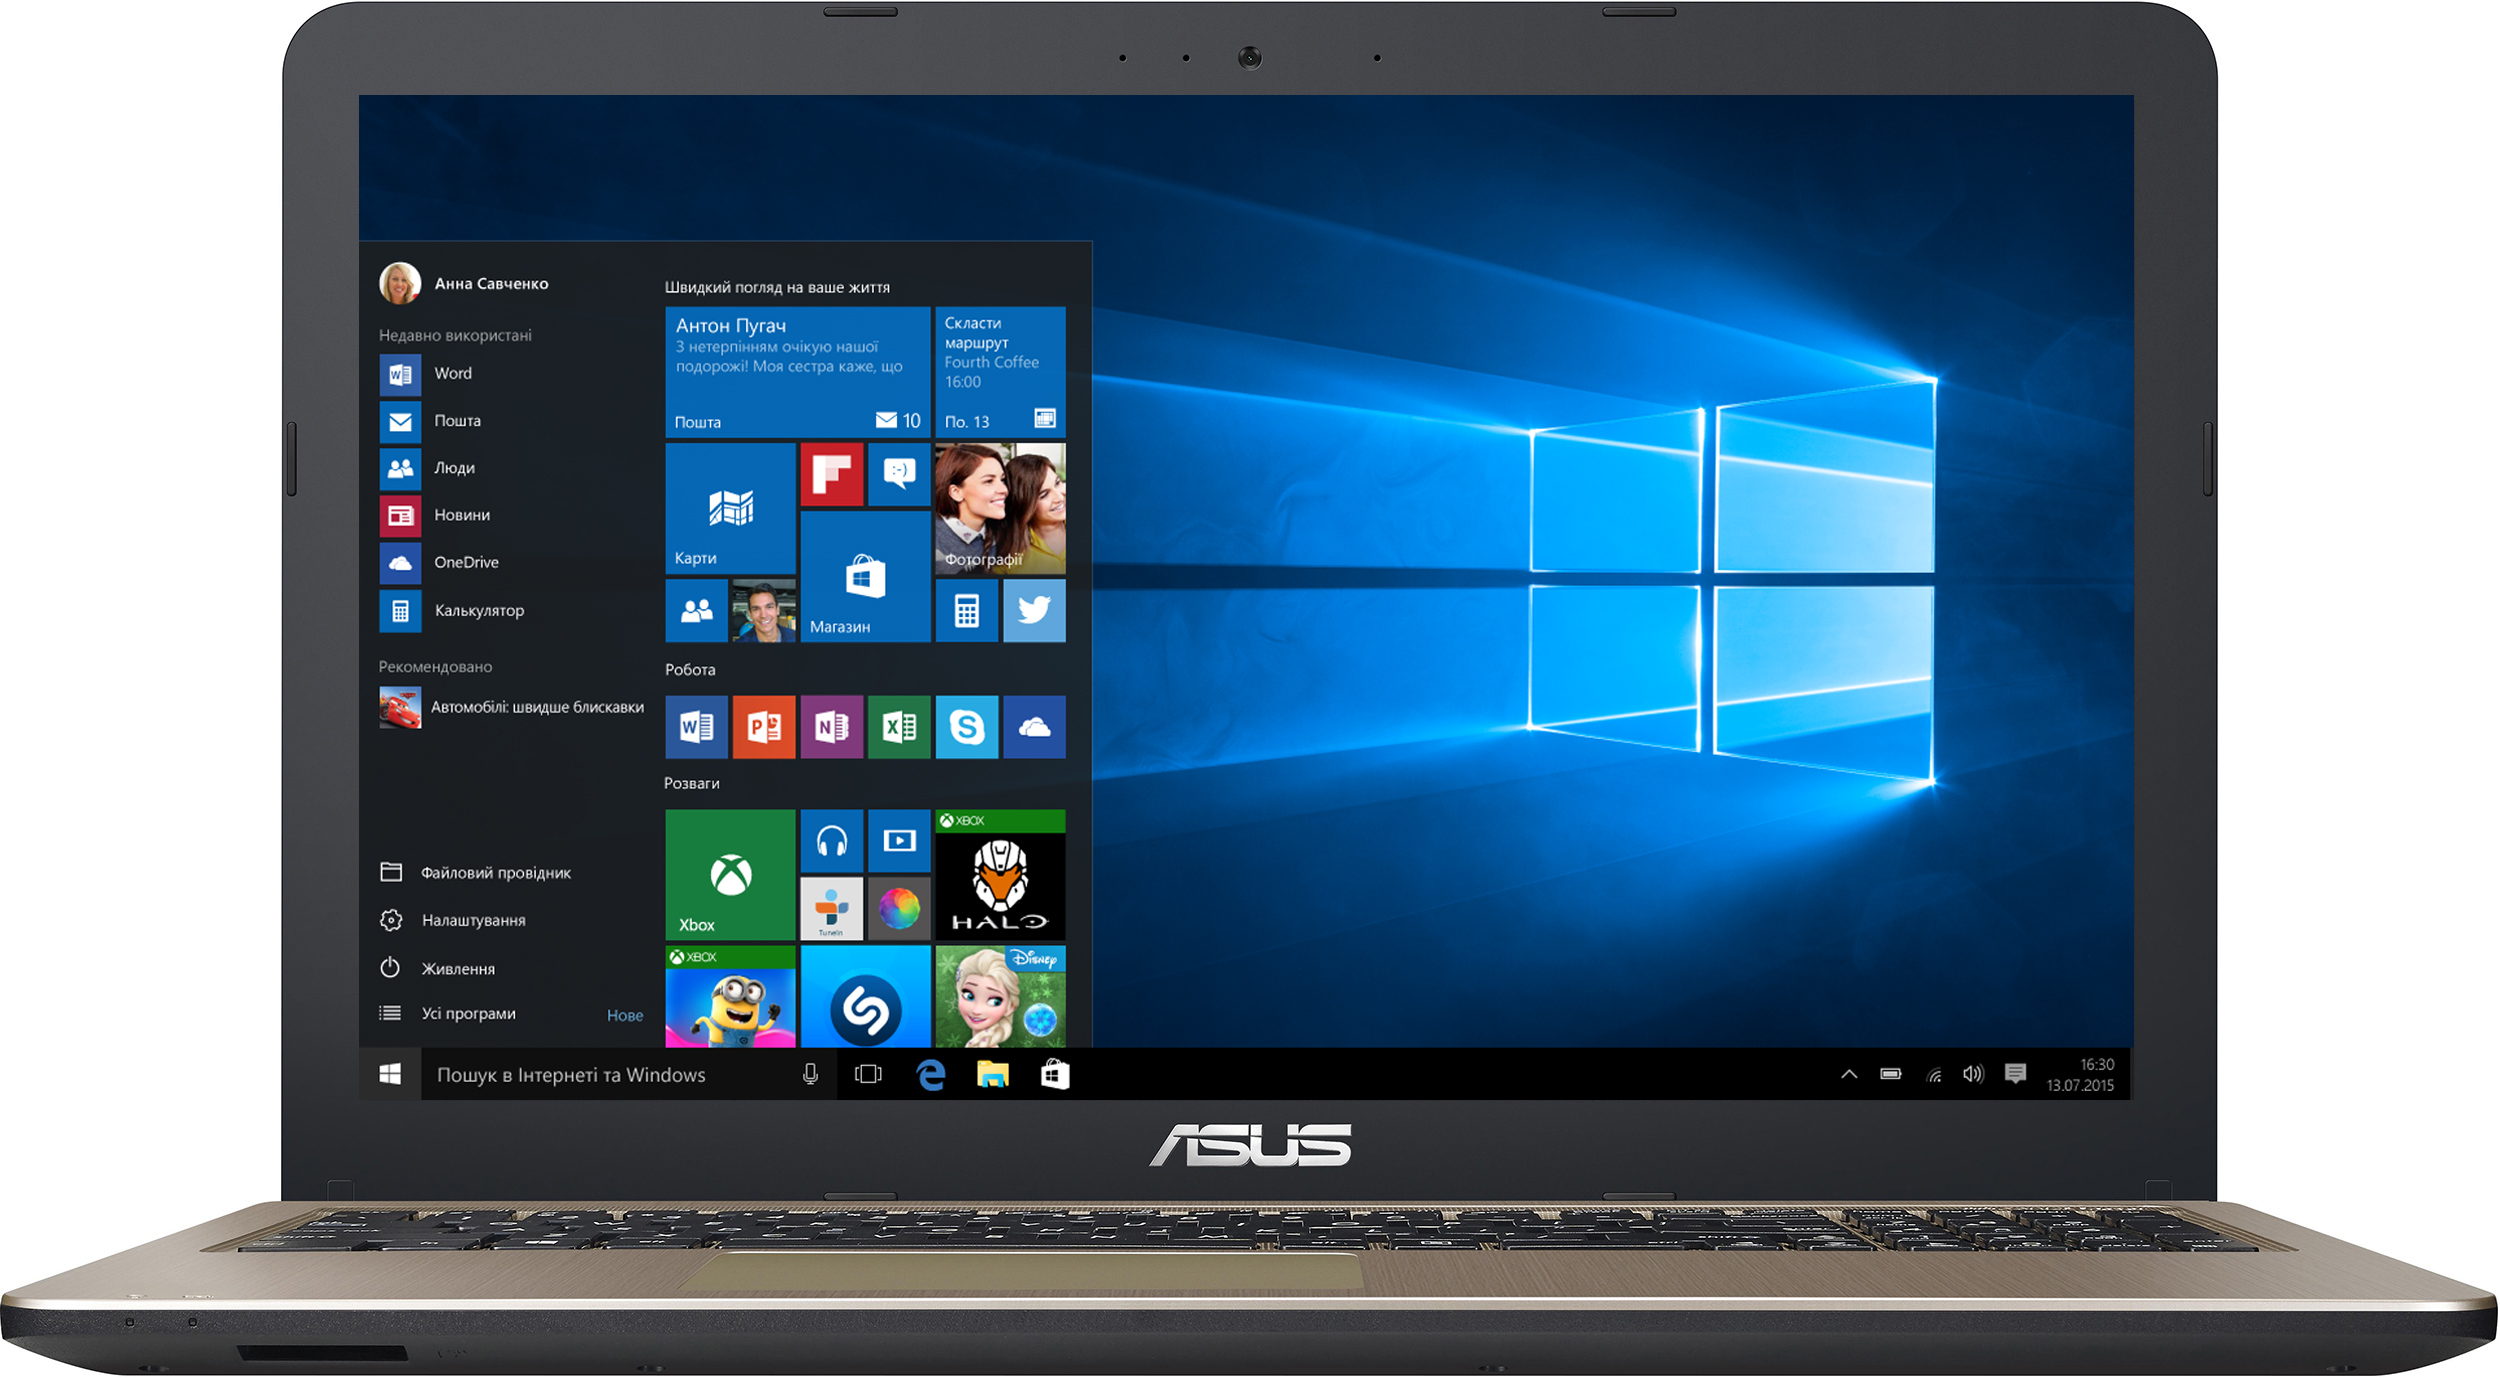 Ноутбук Asus VivoBook D540NA-GQ211T (90NB0HG1-M04200) Chocolate Black с Windows 10!